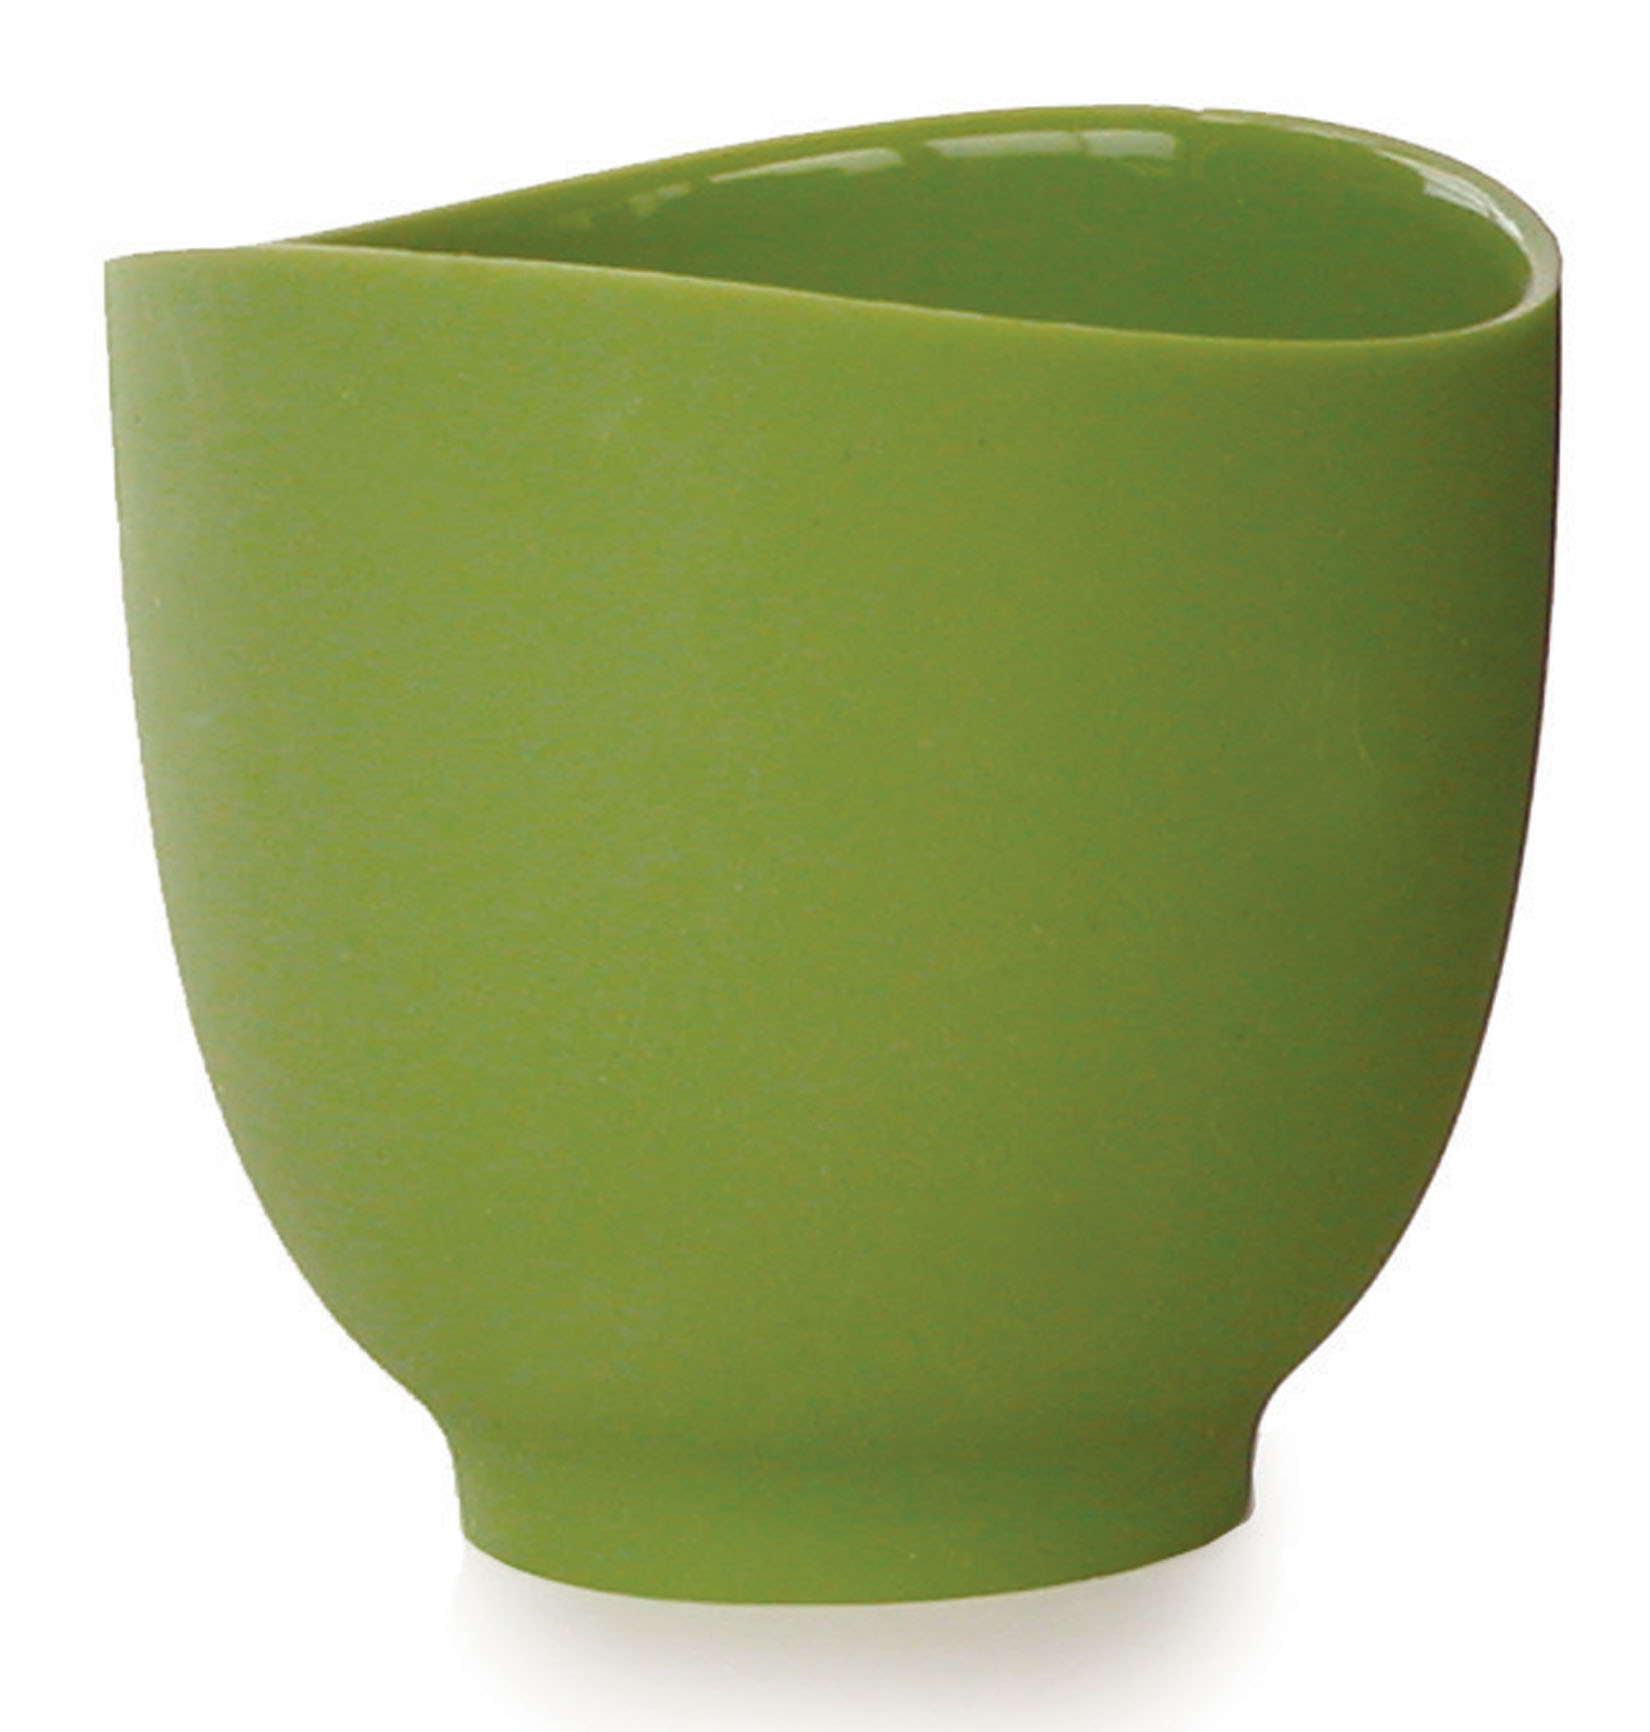 iSi Flex-it Wasabi Green Silicone Mixing Bowl, 1 Quart